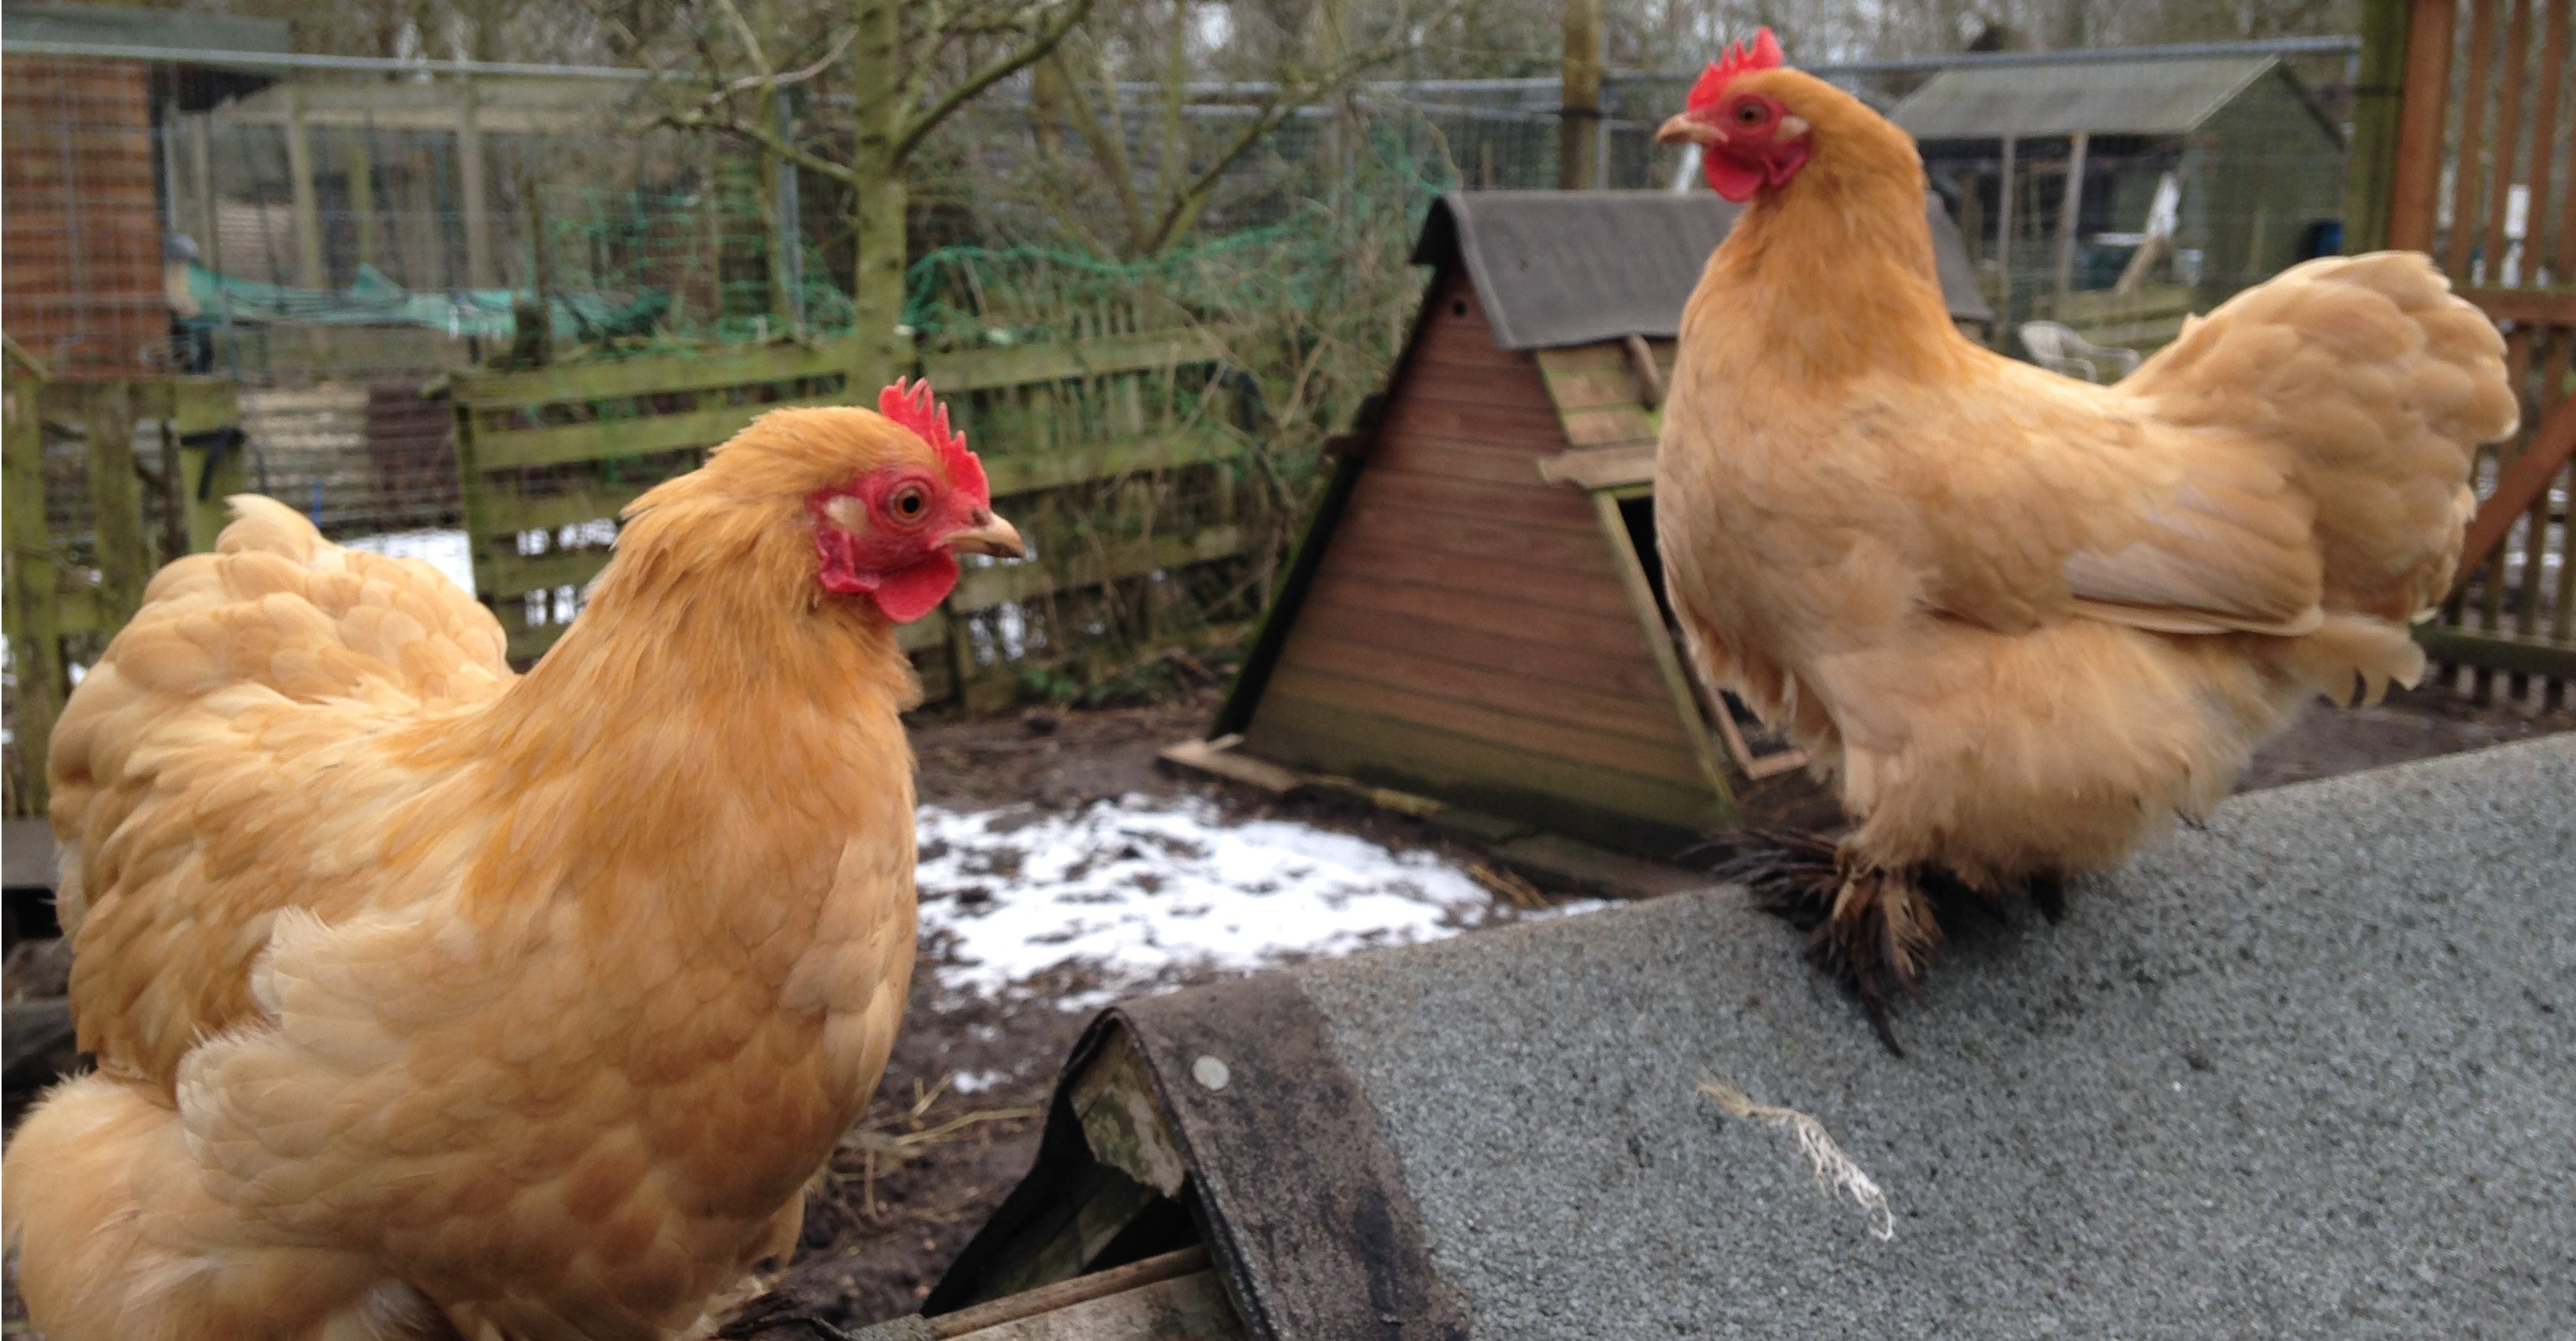 <h2>Chicken allotments</h2><div class='slide-content'><p><span class='highlight'>Plots within a fenced area where you can keep hens to produce eggs</span></p></div><a href='/chicken-plots/' class='btn' title='Read more'>Read more</a>